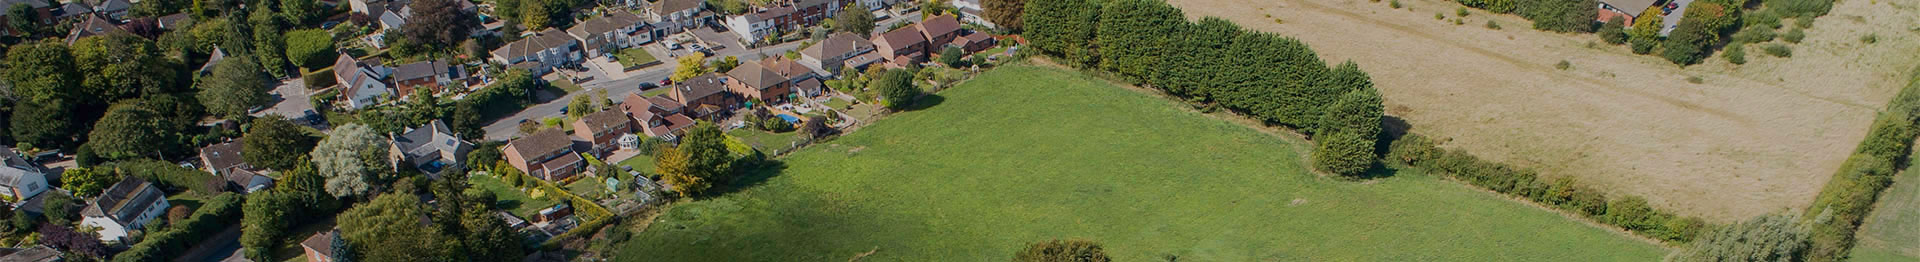 Land off Wanborough Road, Swindon